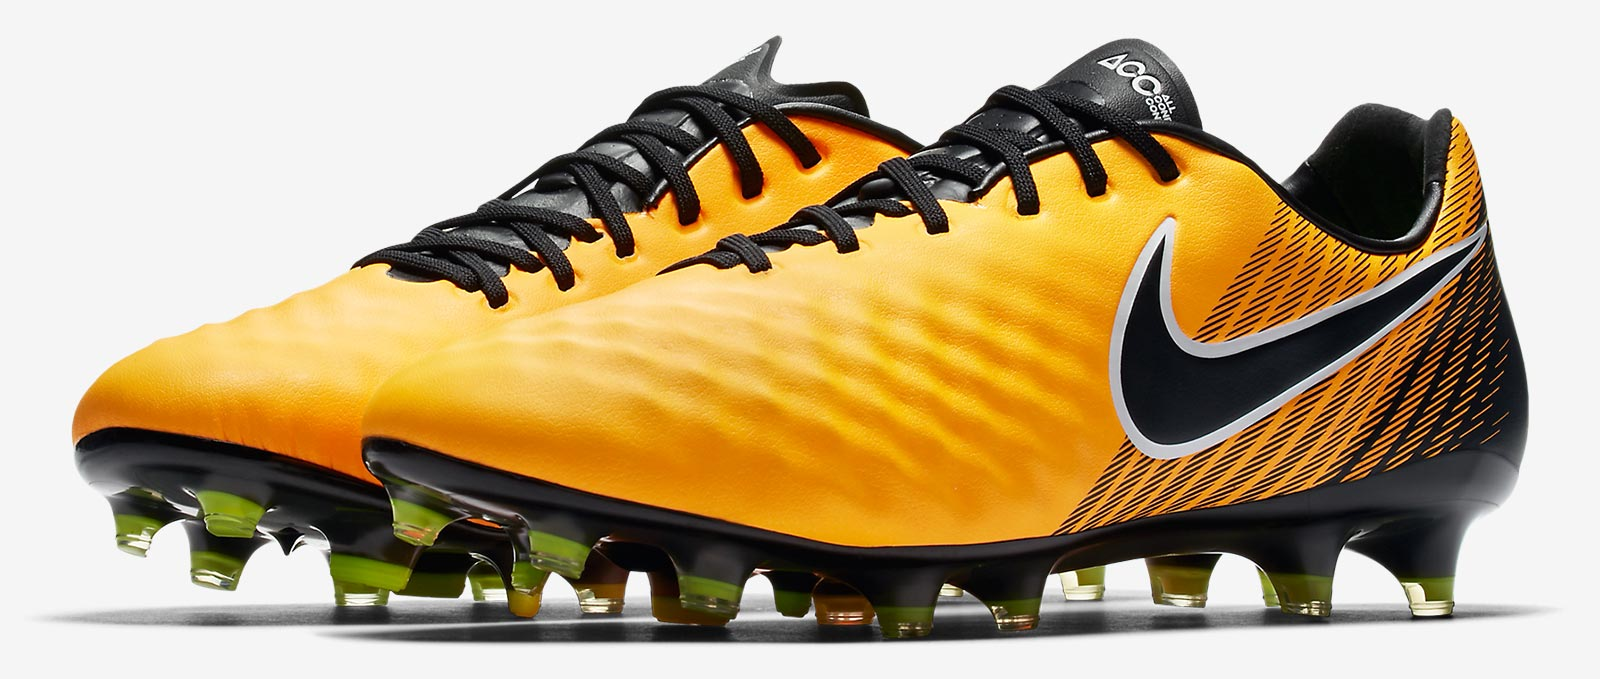 Nike Magista Opus II 'Lock in, Let Loose' Boots Revealed ...